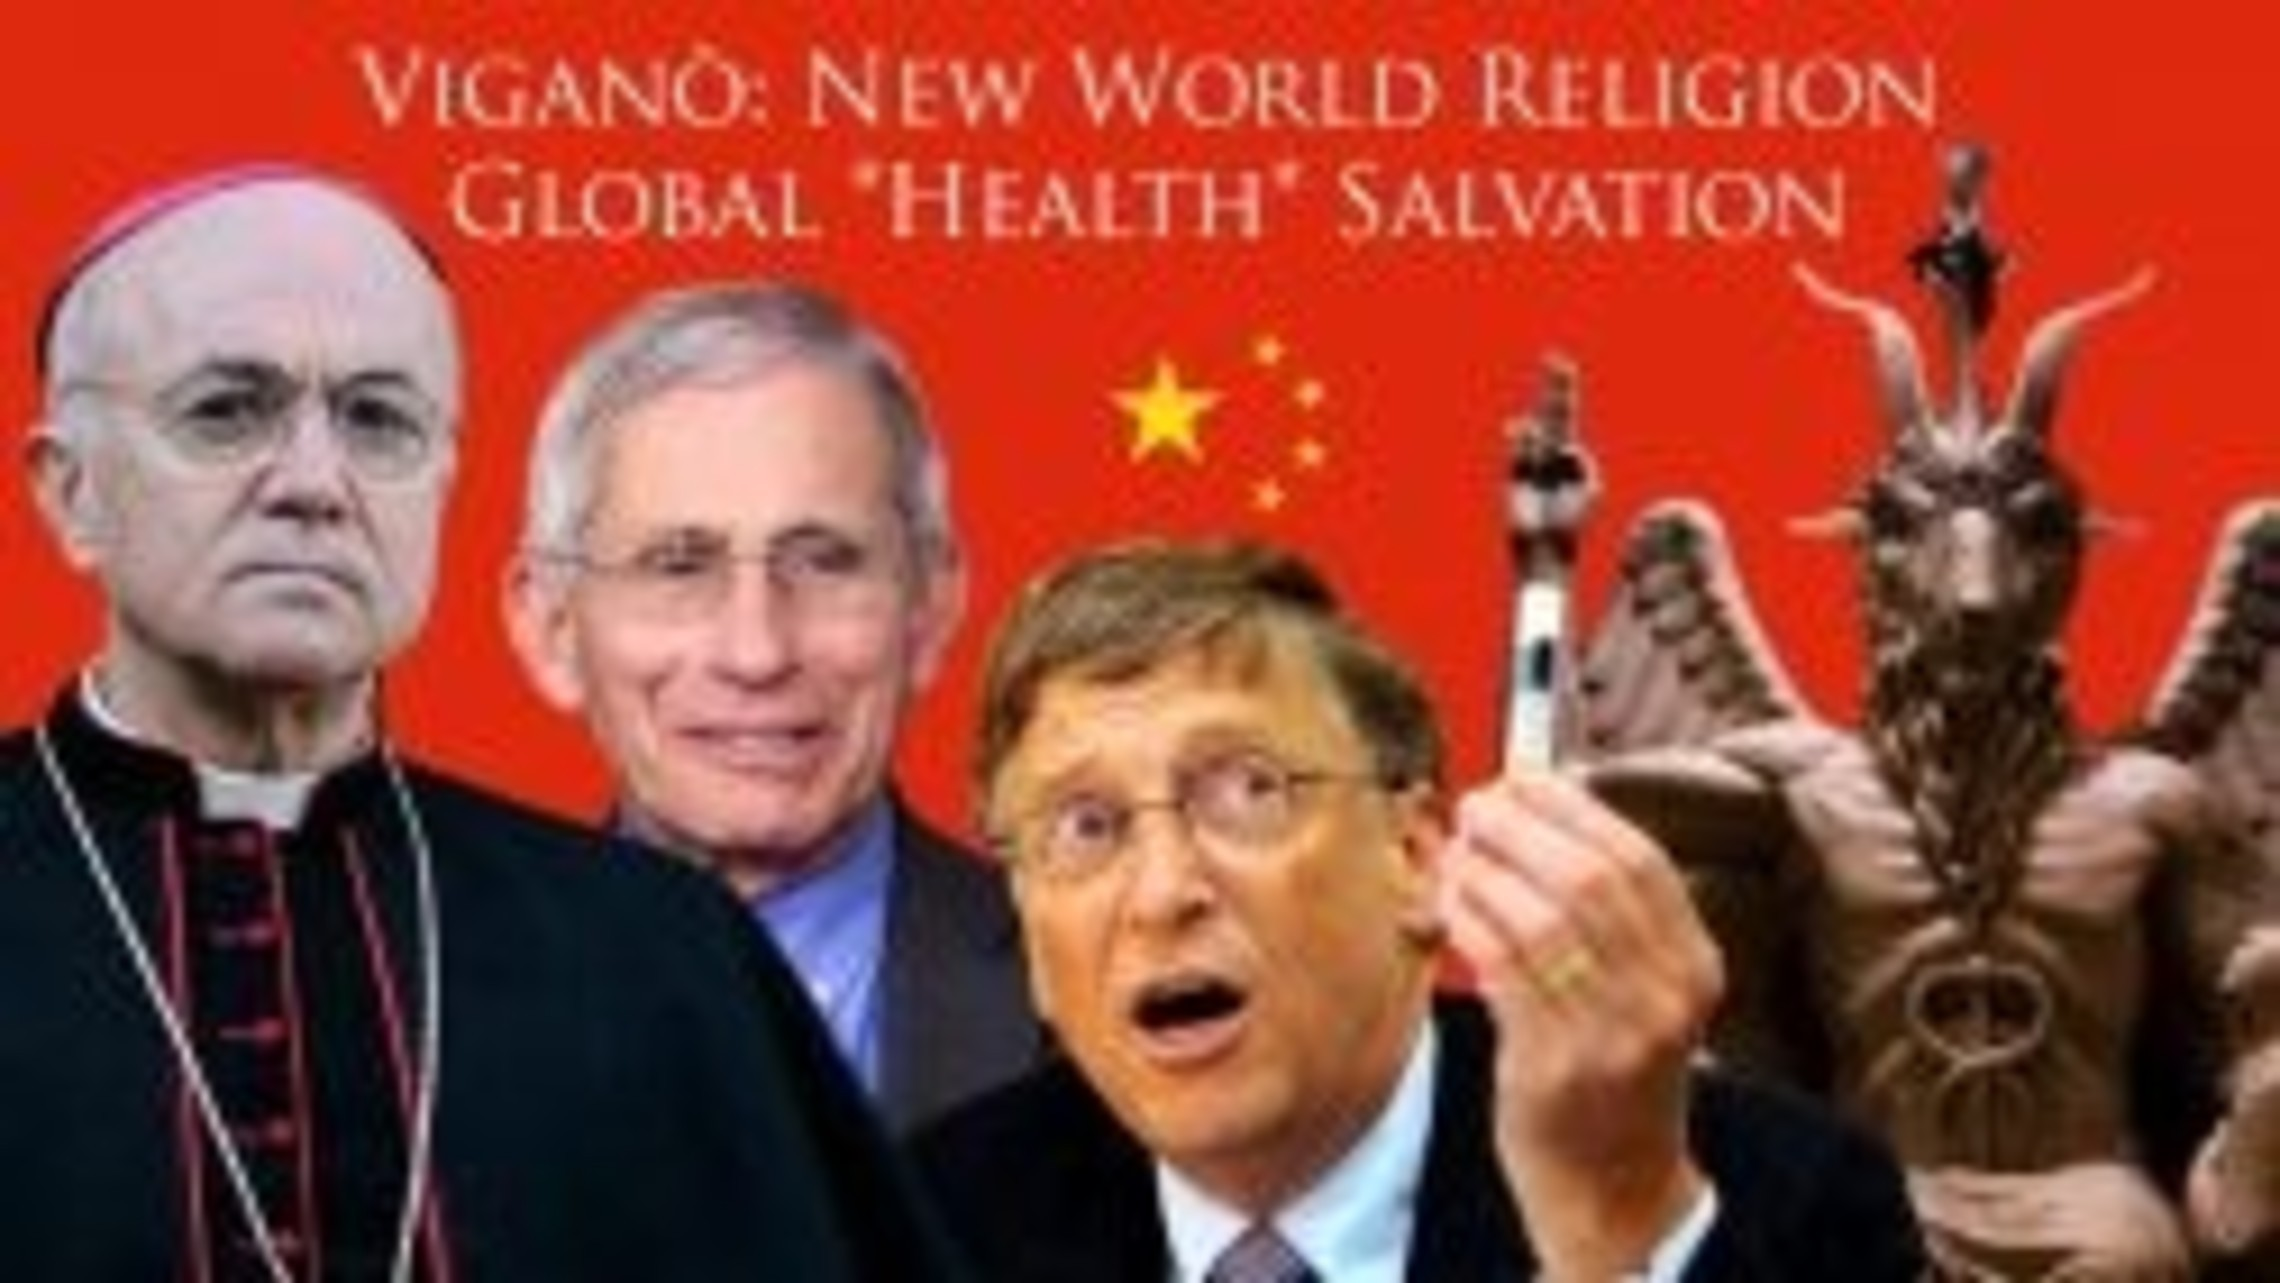 Viganò exposes New World Religion of Global *Health* Salvation and New Sacraments